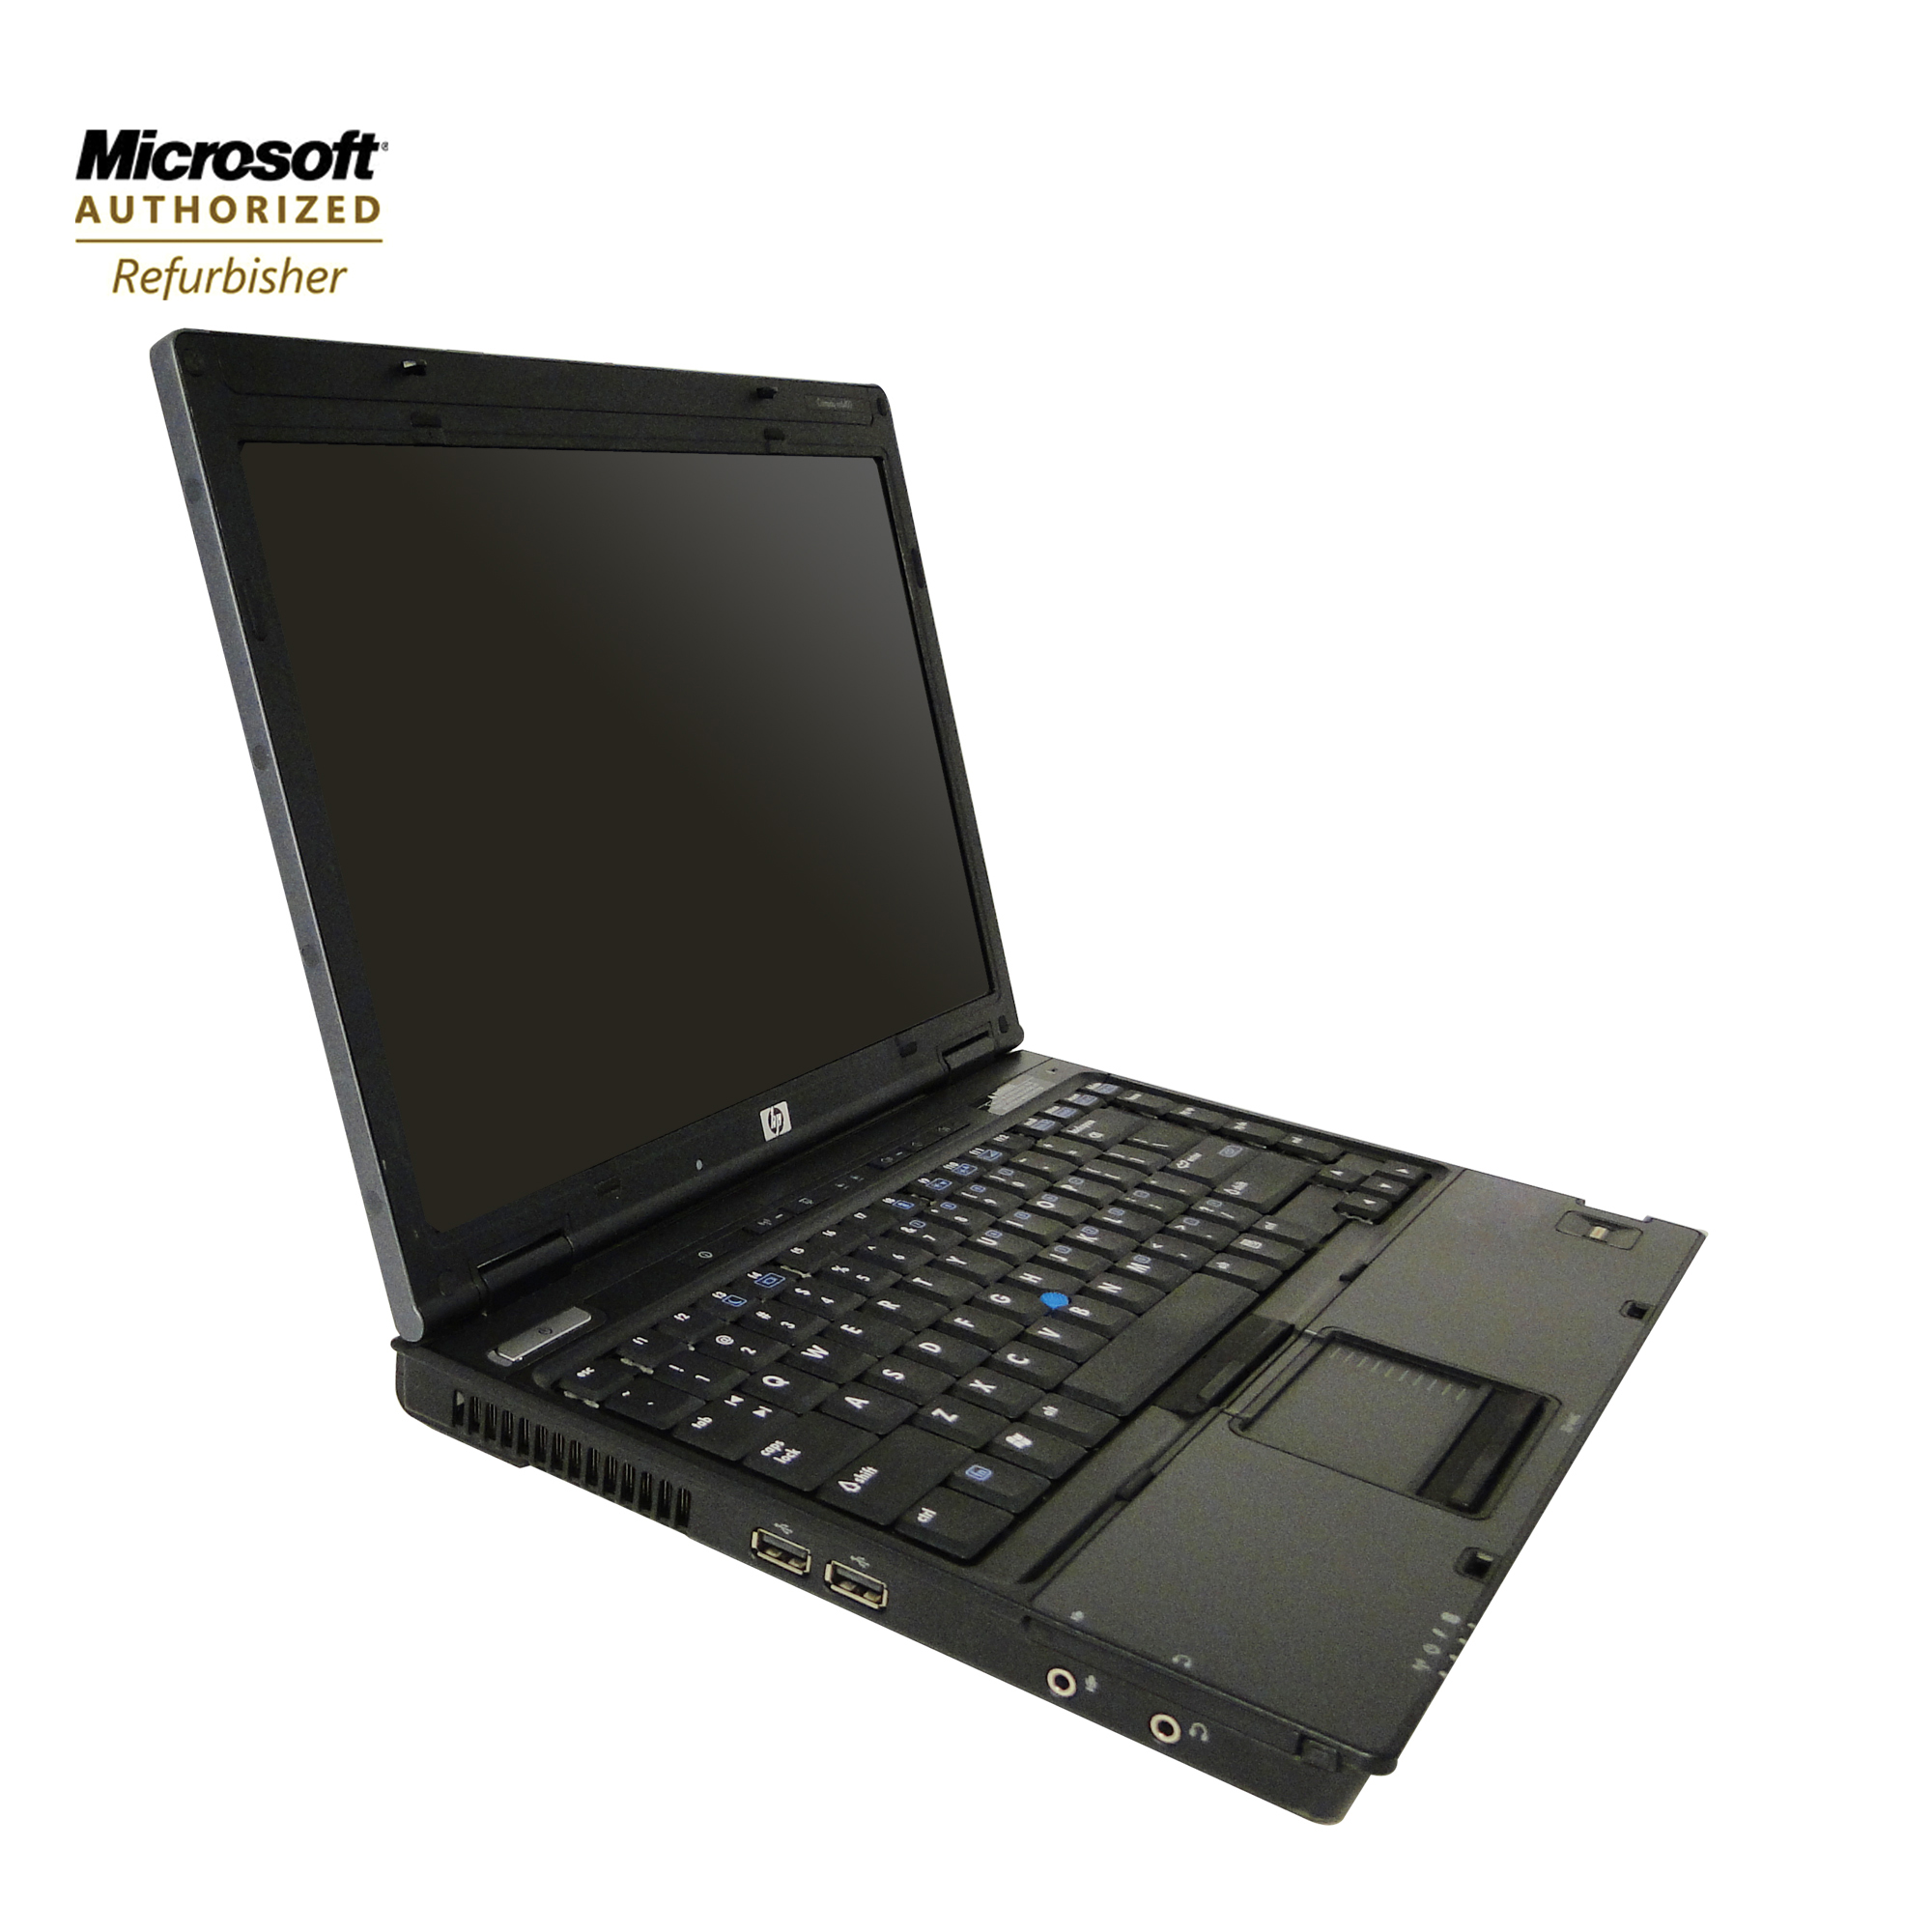 HP NC6400 Refurbished 14.1 Laptop, Intel CoreDuo 1.8GHz, 2GB, 80GB, CDRW/DVD, Windows7 Home Premium